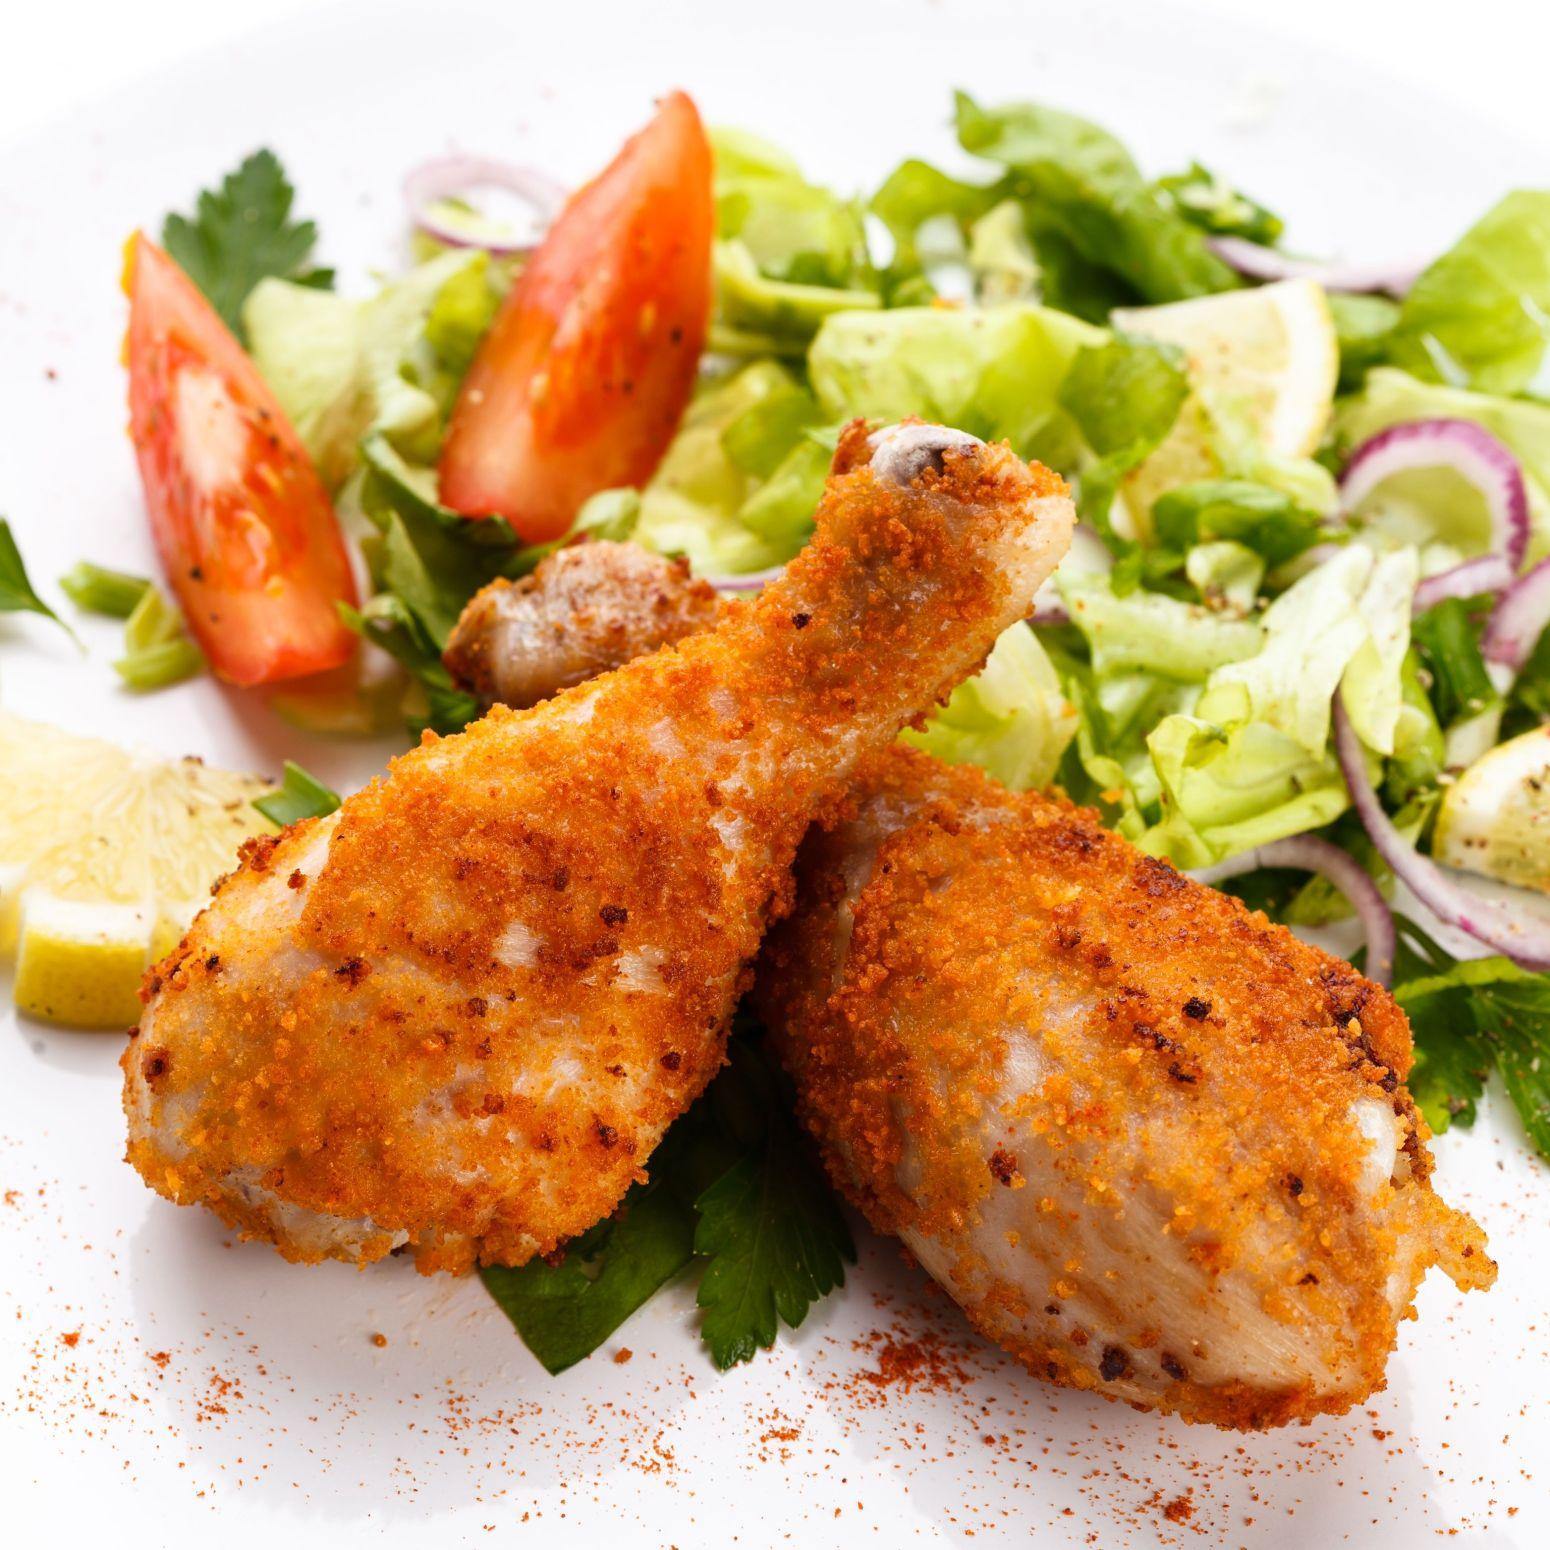 Breaded & Baked Chicken Drumsticks Recipe | Just A Pinch Recipes